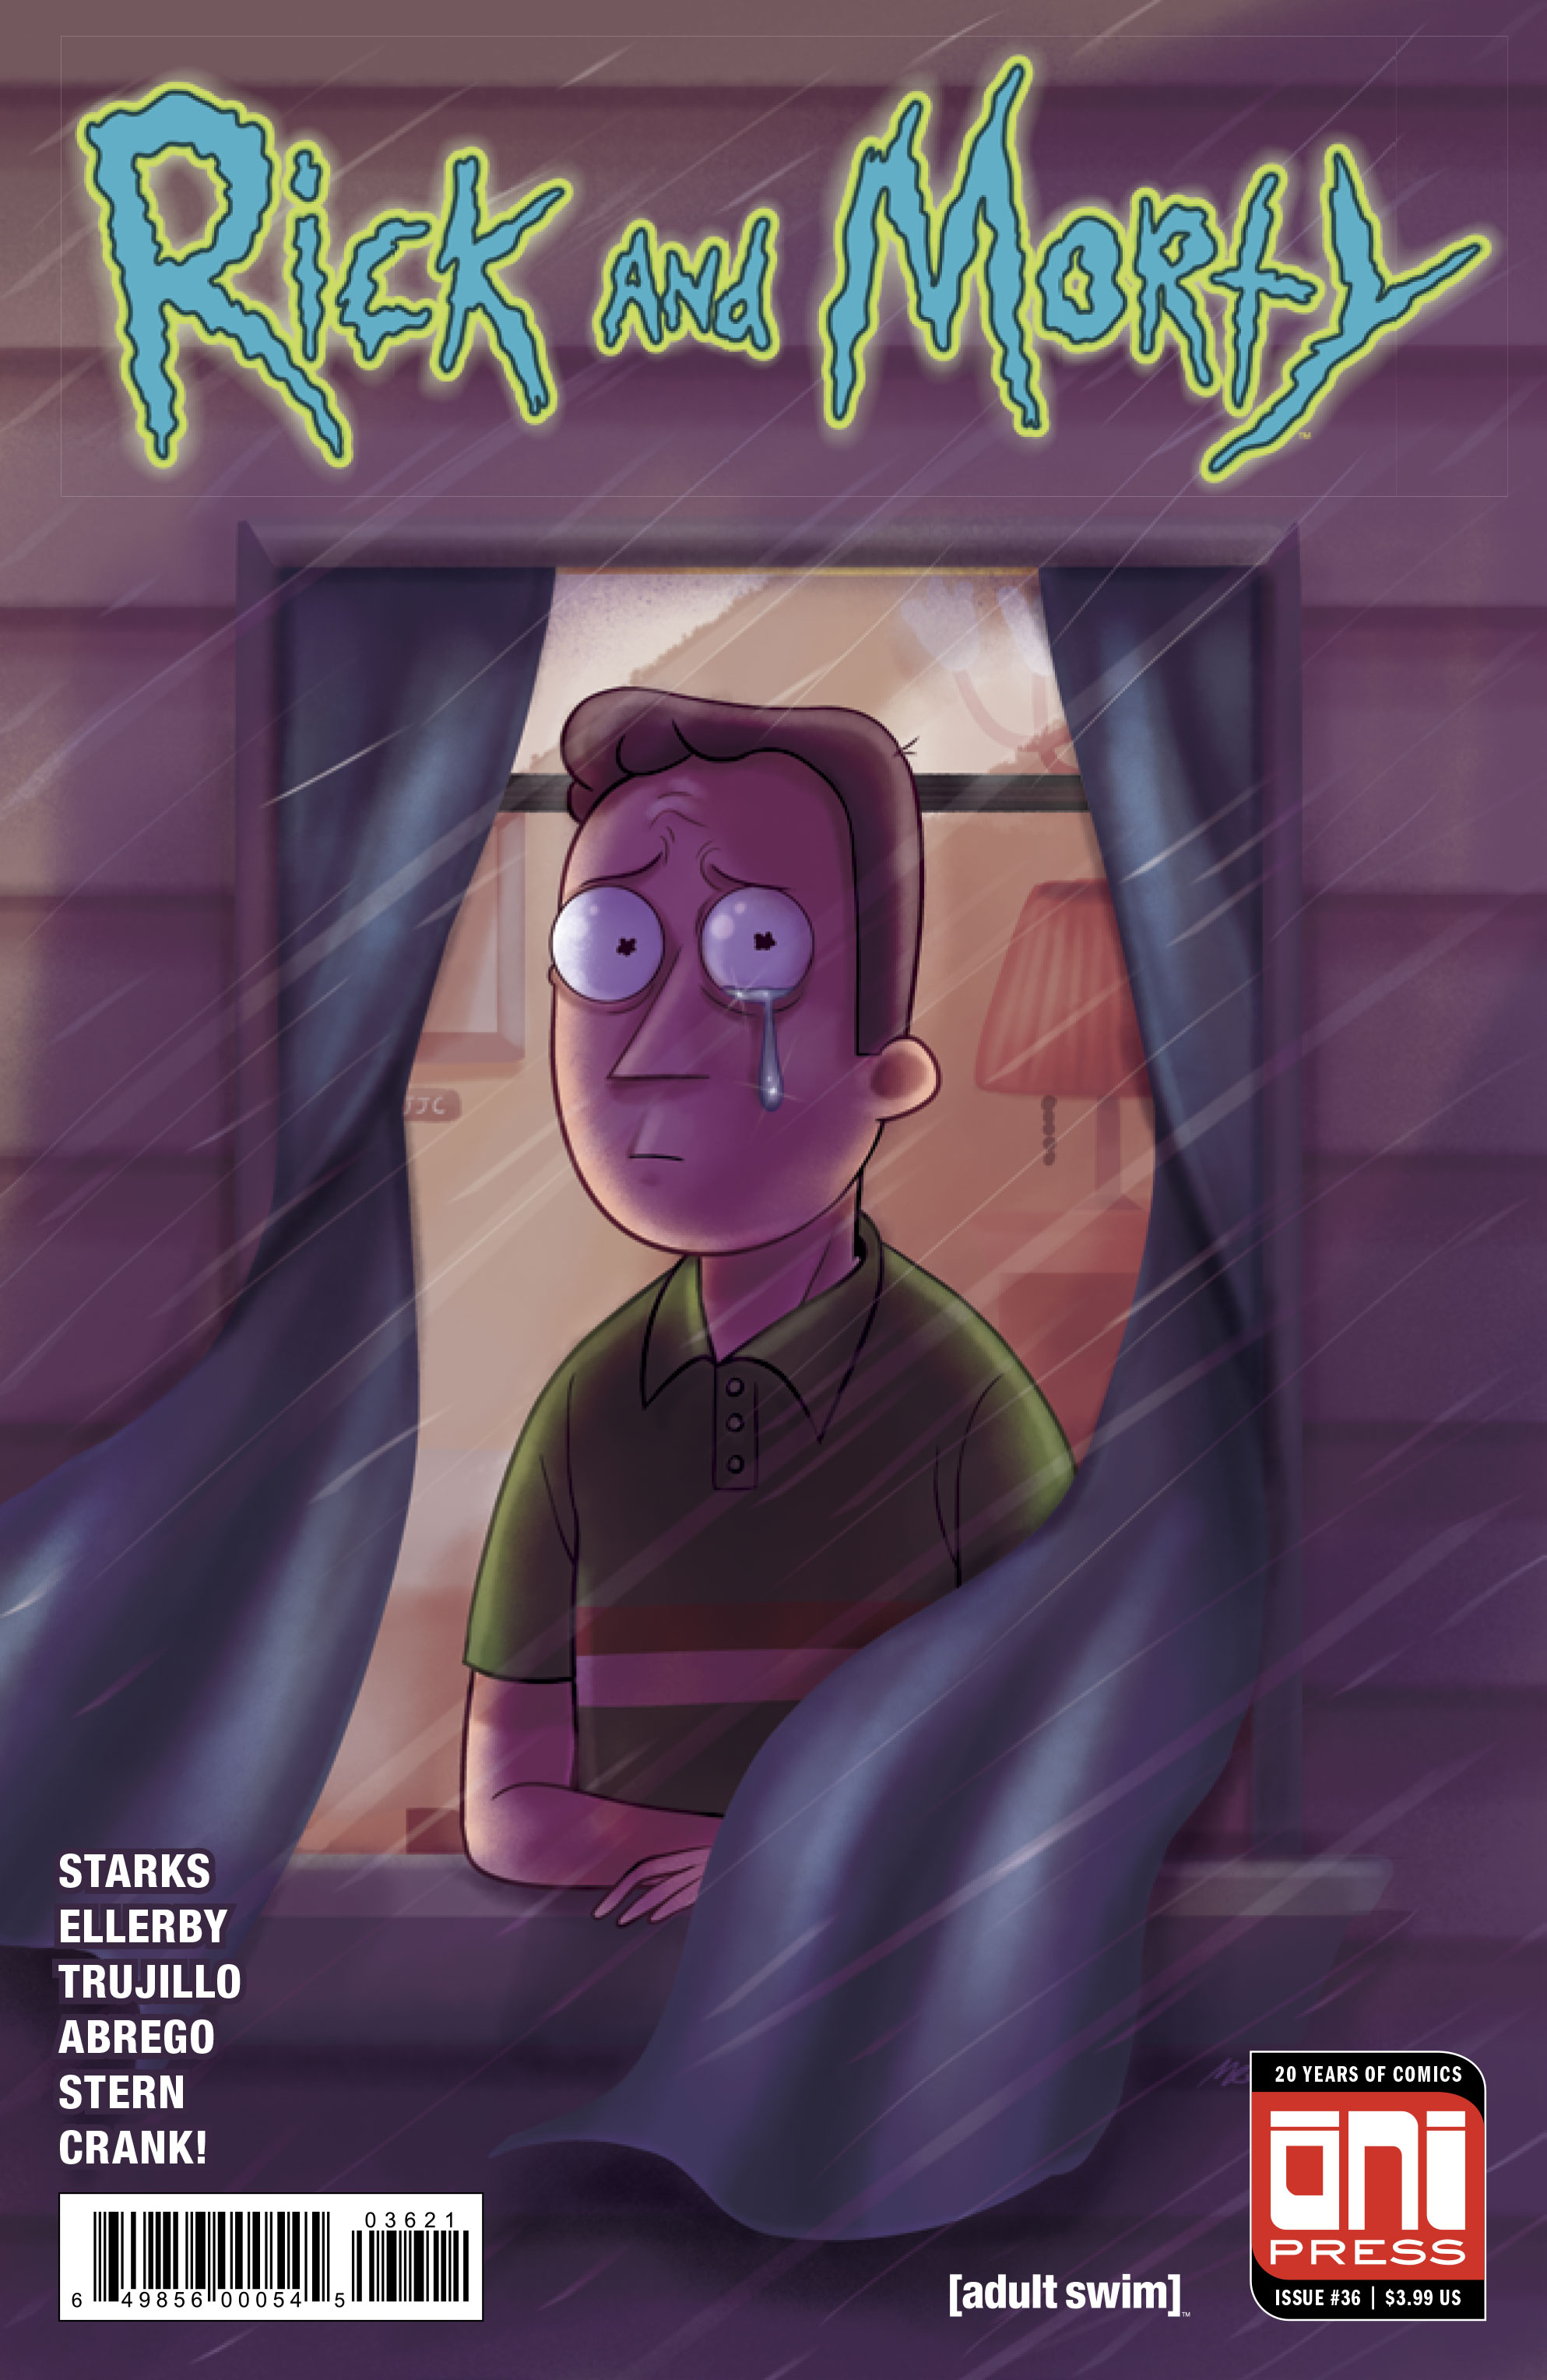 Rick and Morty #36 Review